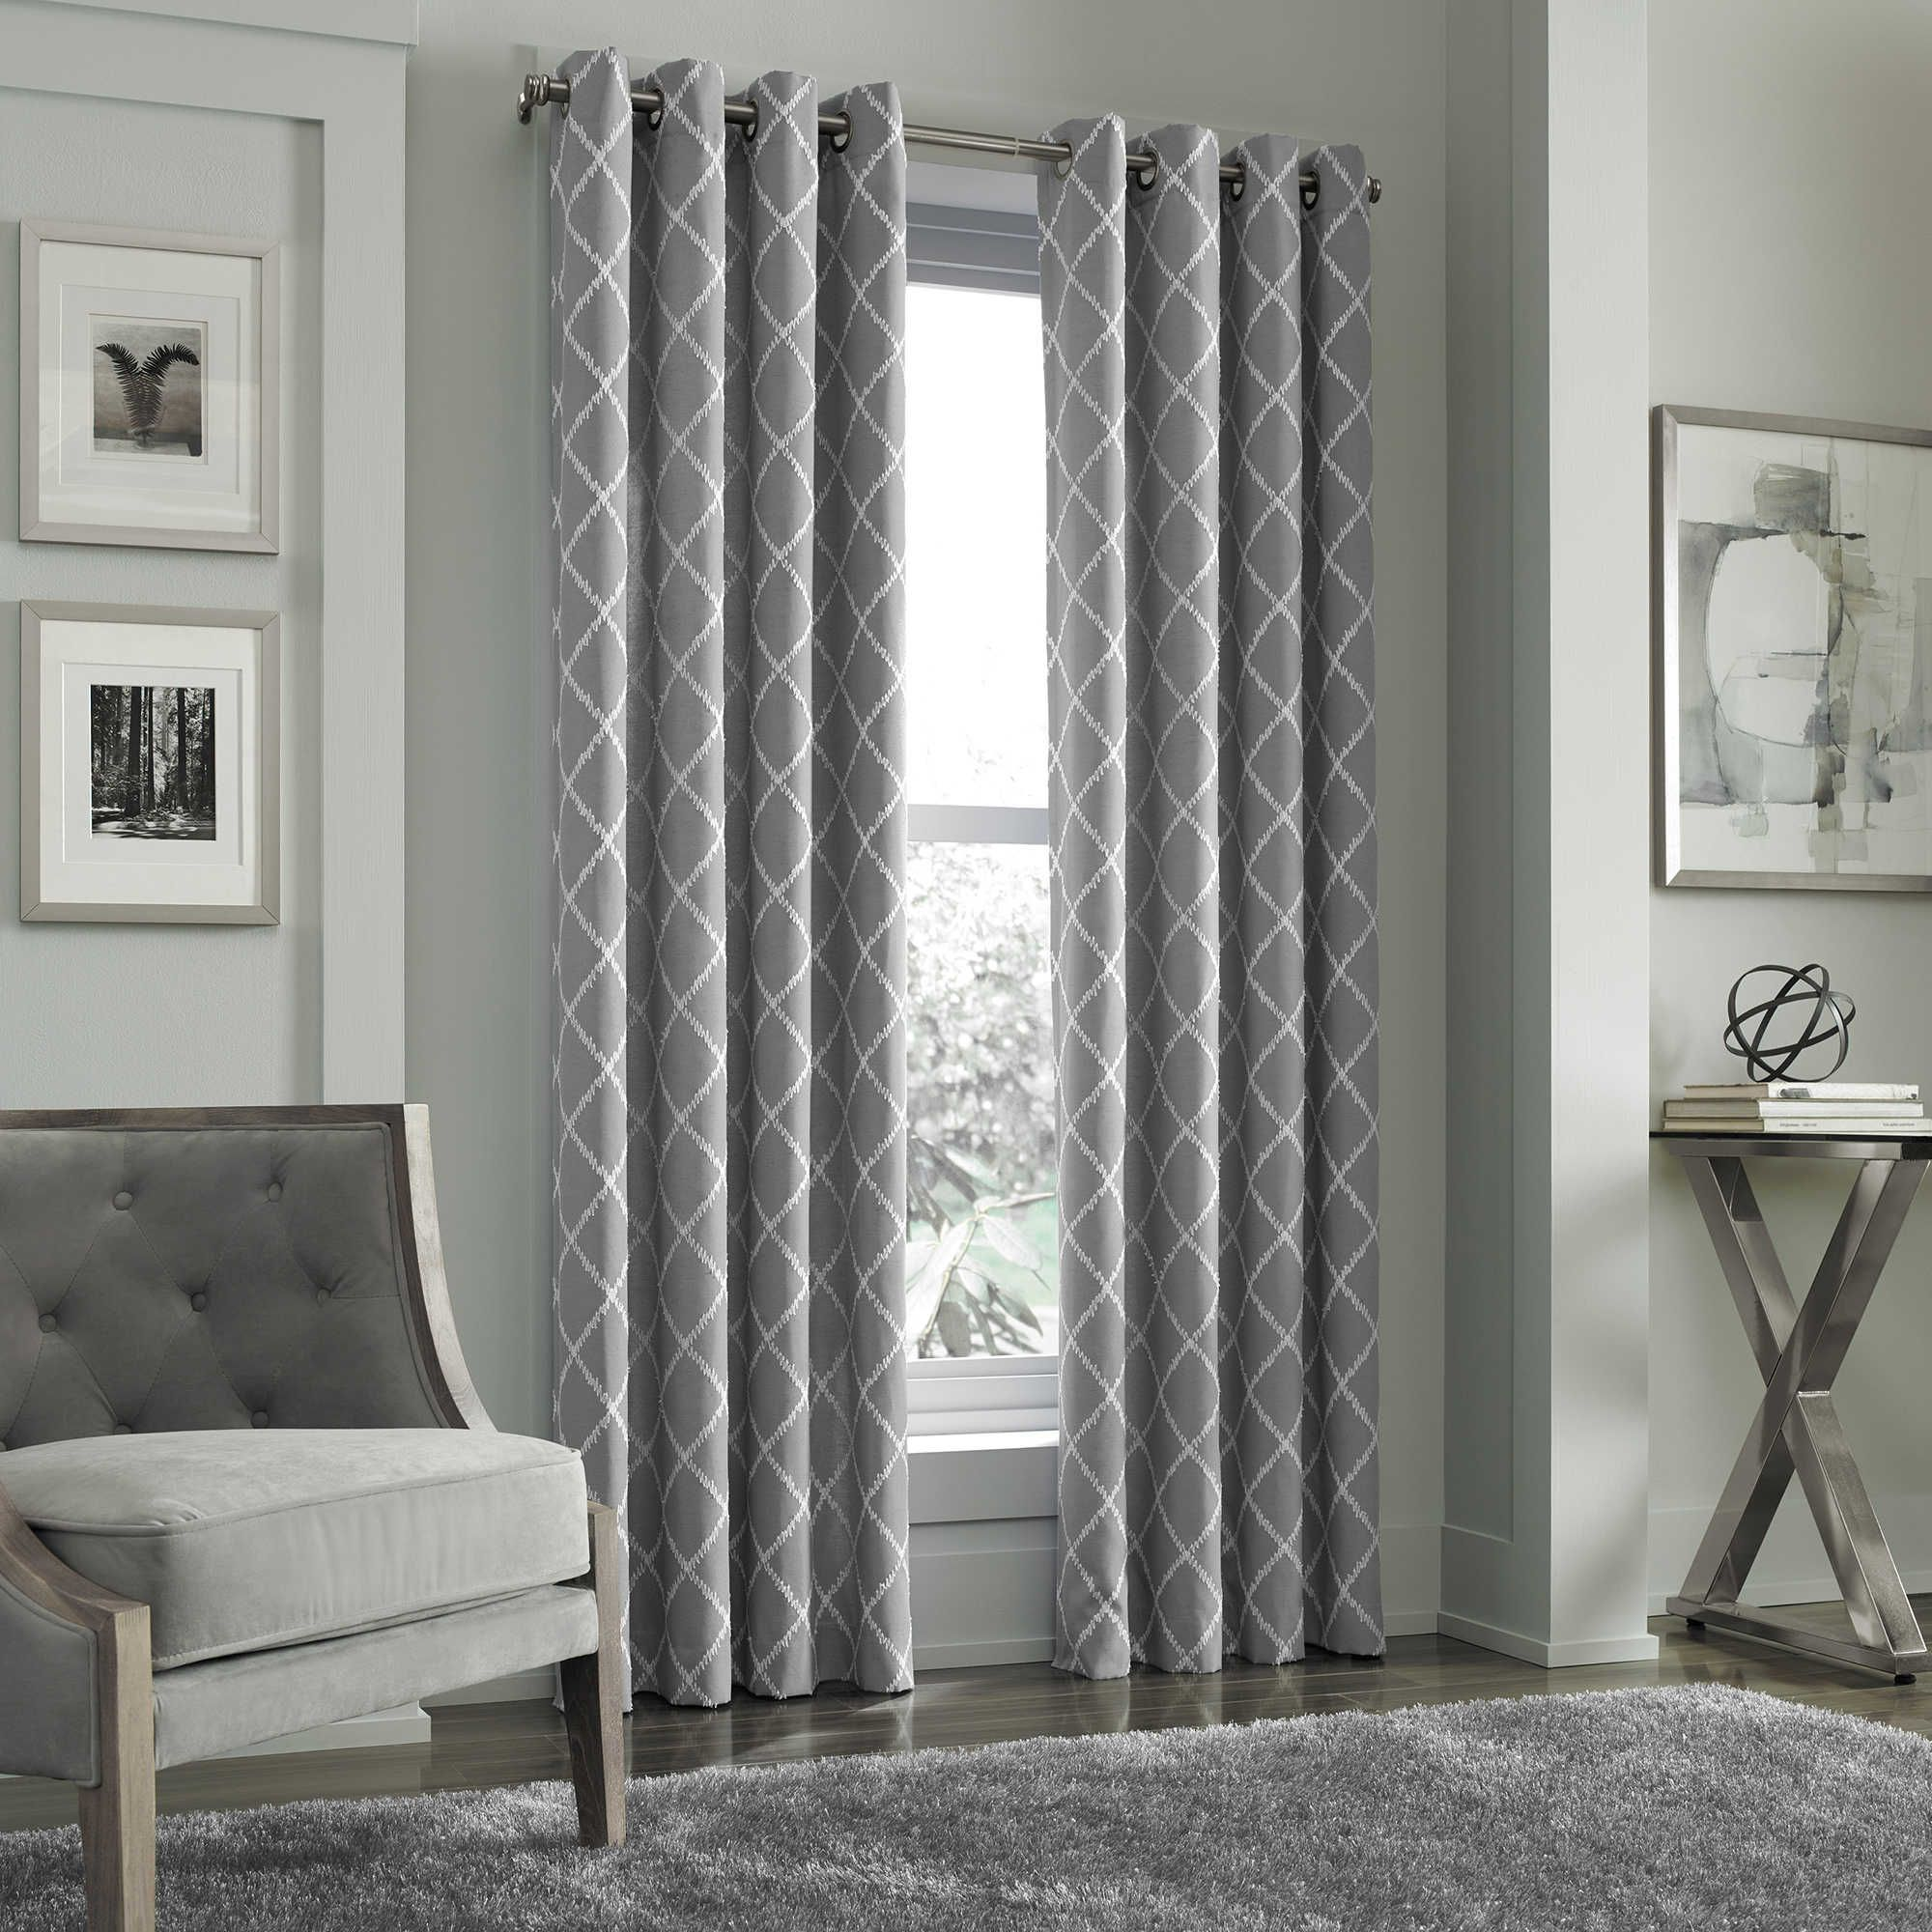 J Queen New York Adorn Grommet Top Embroidered Window Curtain Panel Panel Curtains Striped Room Colorful Curtains